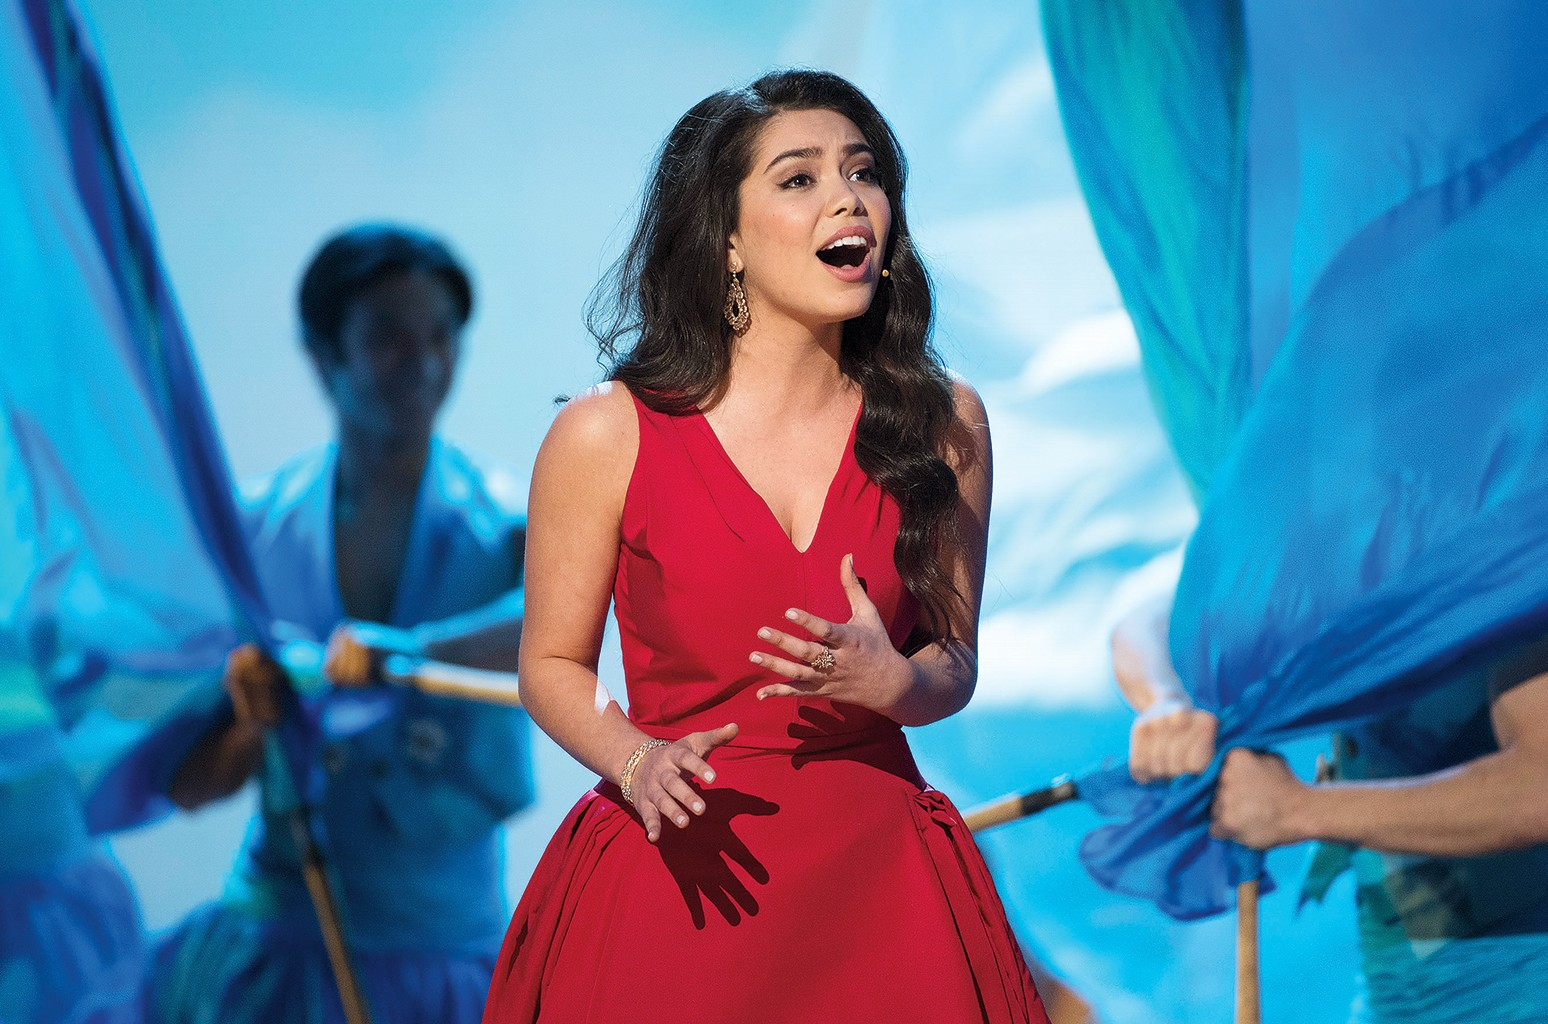 Auli'i Cravalho performs at the 89th Annual Academy Awards on Feb. 26, 2017.